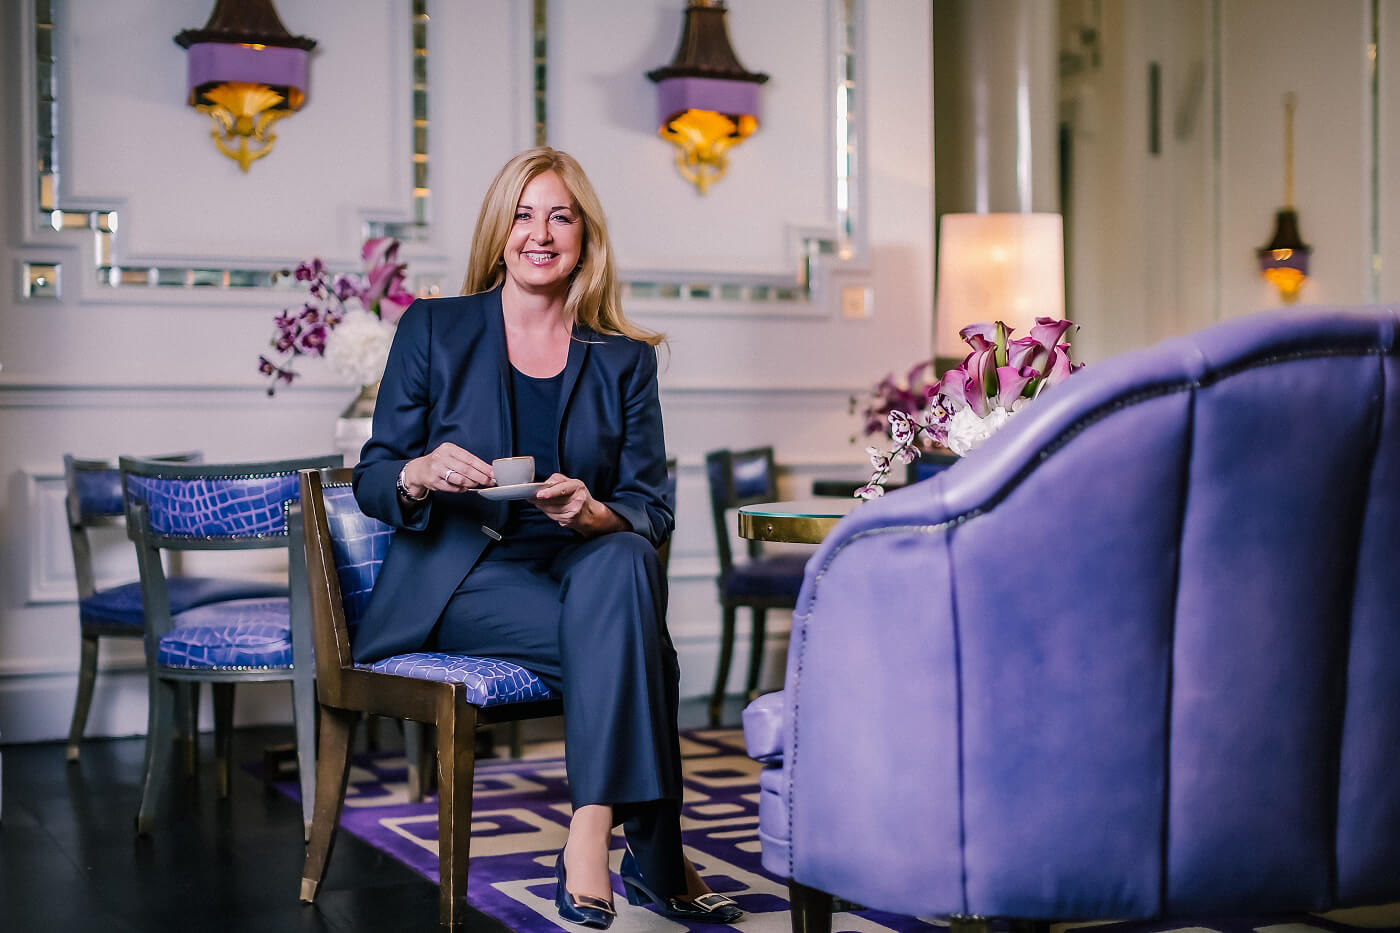 Doris Greif, manager operations of The Langham London Hotel